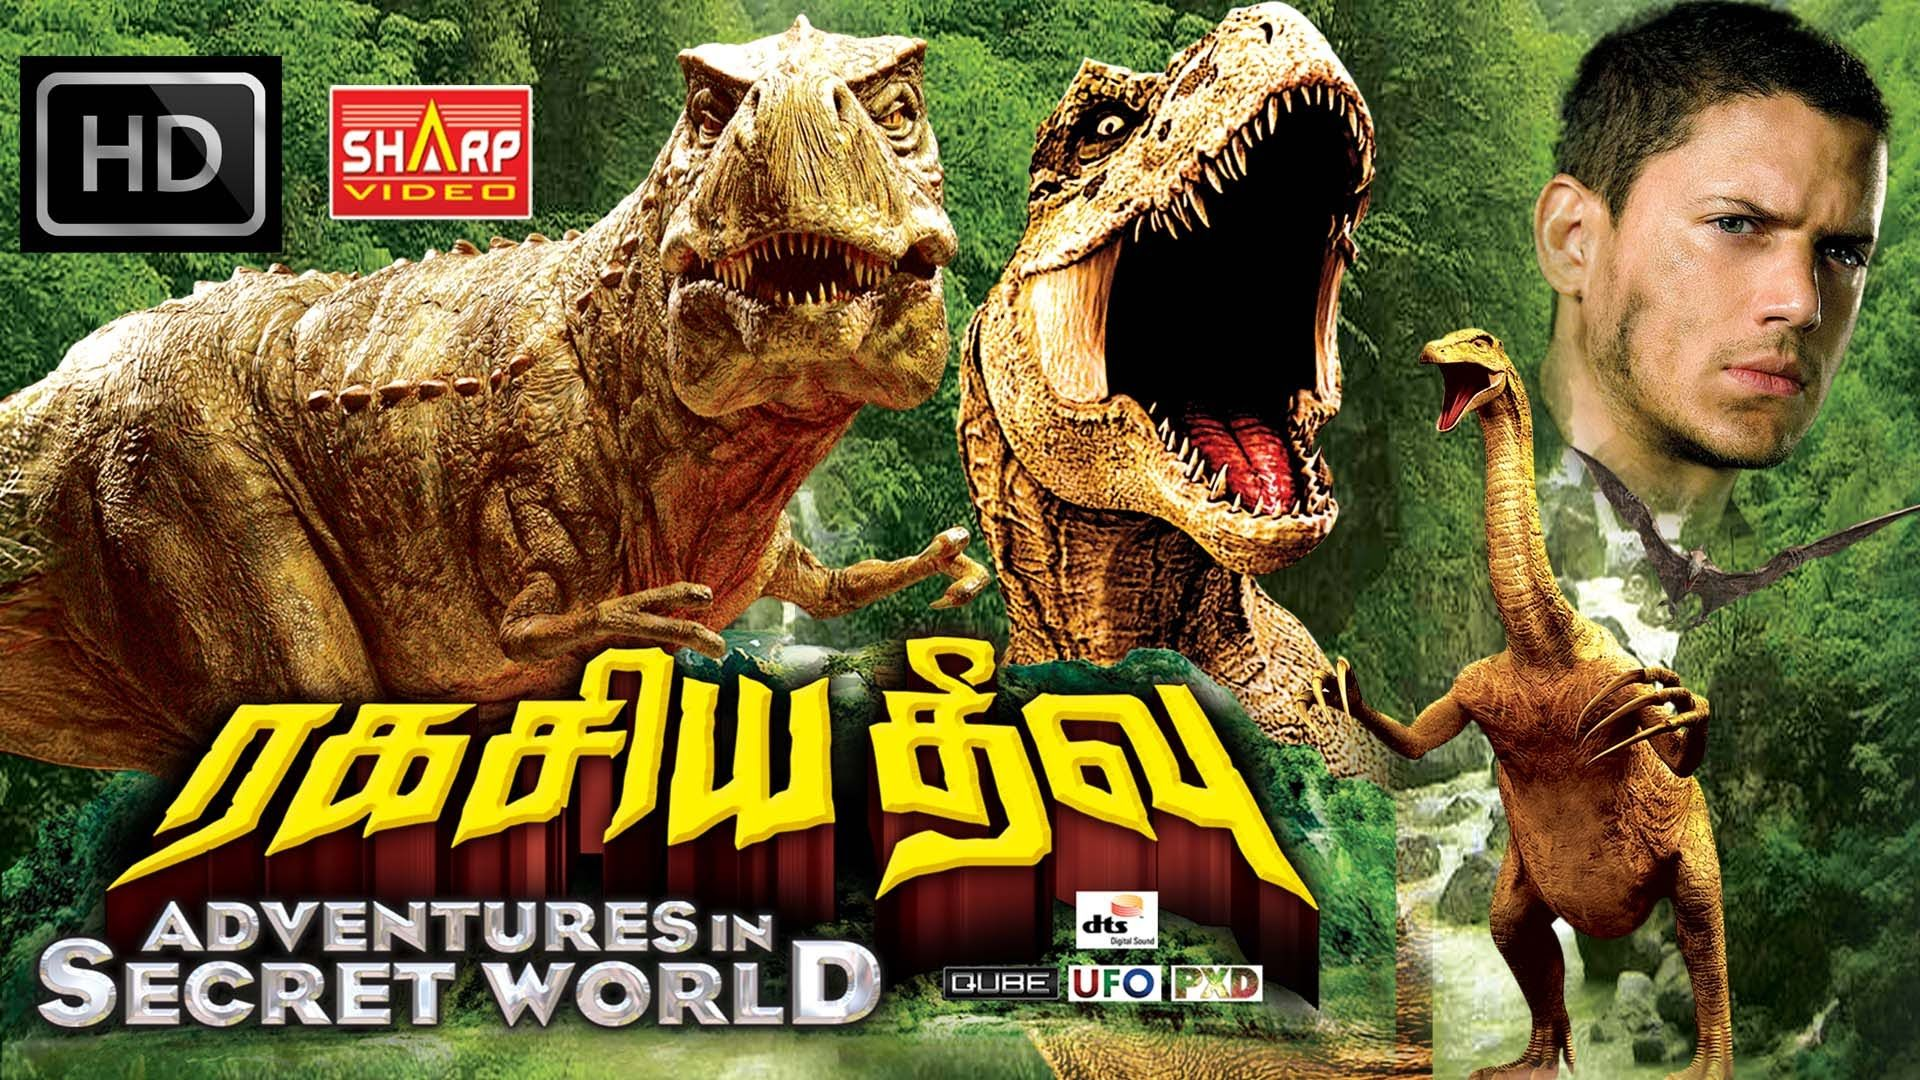 Adventures in Secret World Hollywood Tamil Dubbed HD